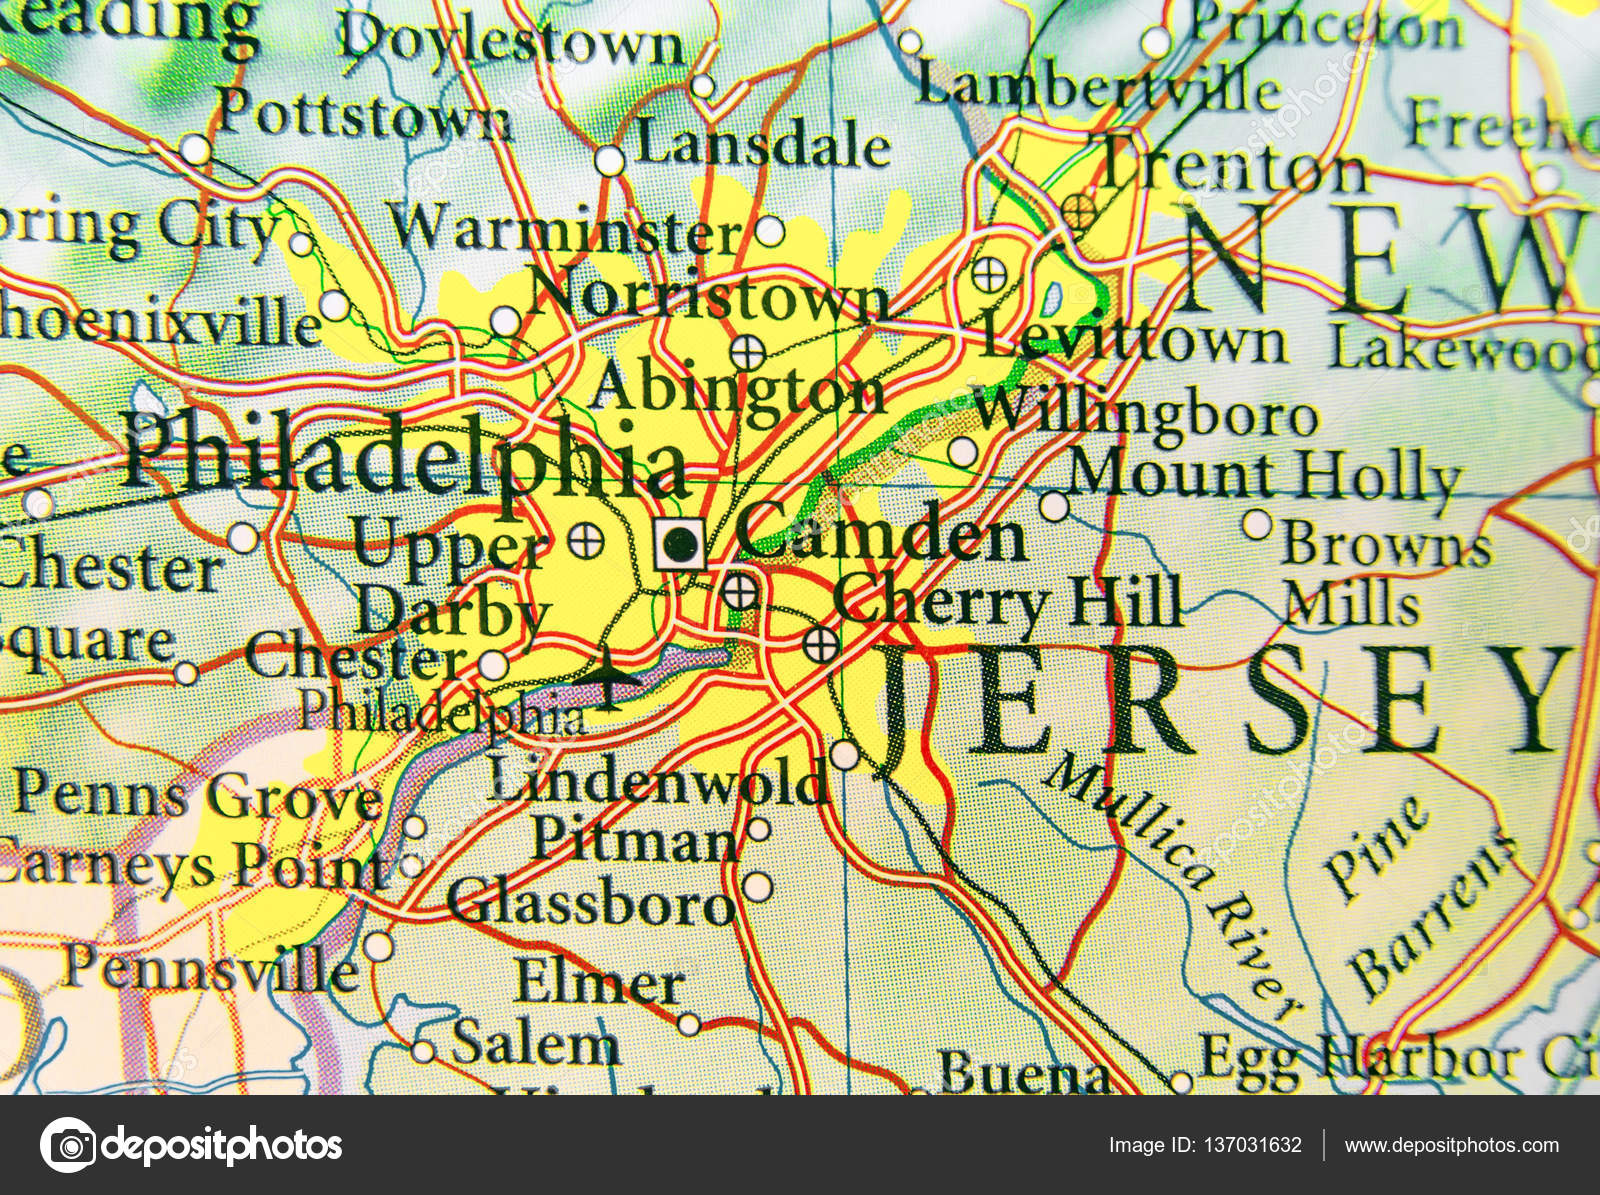 Philadelphia Map Of Us.Geographic Map Of Us City Philadelphia And Other Important Citie